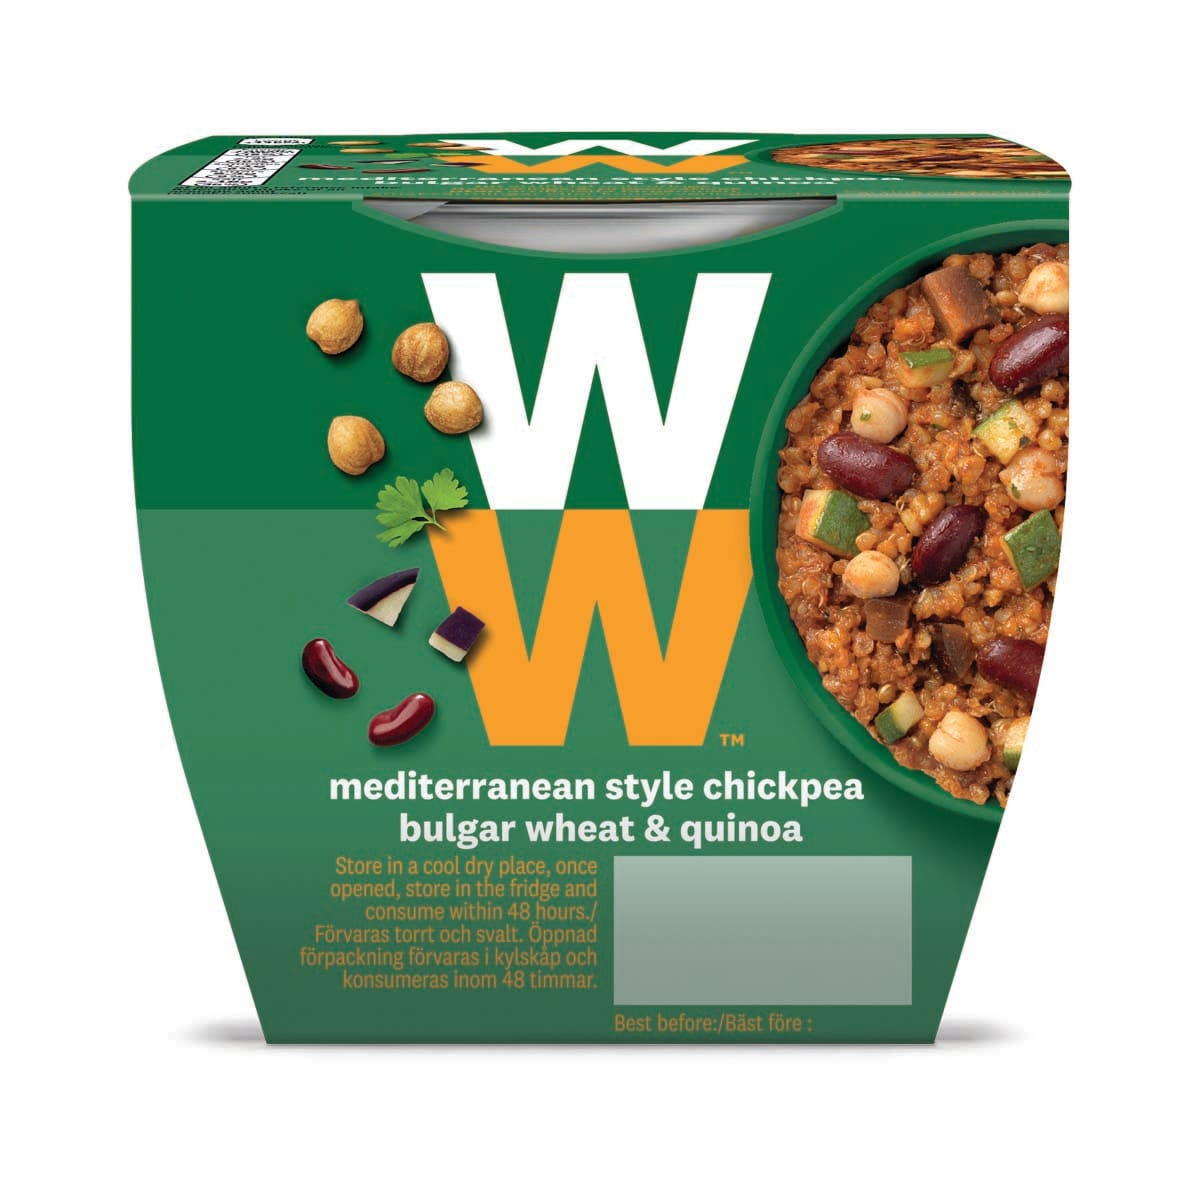 WW Mediterranean Style Chickpea Bulgar Wheat and Quinoa, quick and fuss-free meal, 2 minutes to cook, suitable for vegans